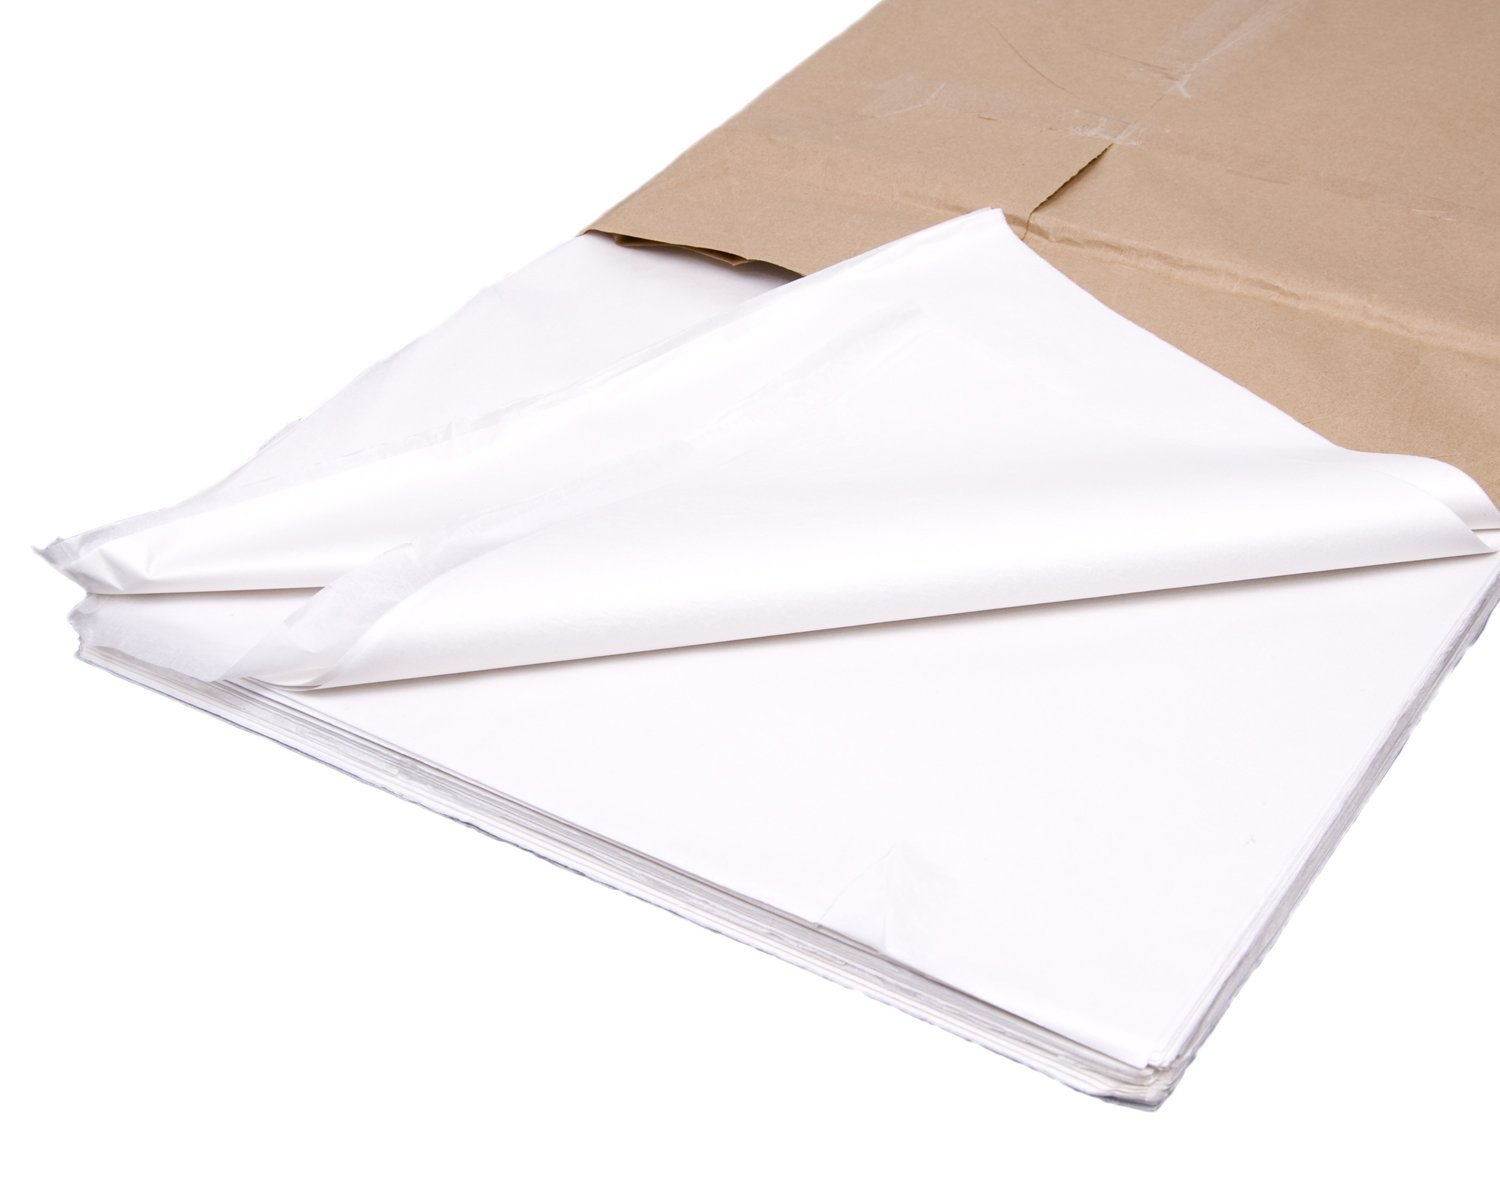 paper tissue Find tissue paper at the lowest price guaranteed buy today & save, plus get free shipping offers on all craft paper at orientaltradingcom.